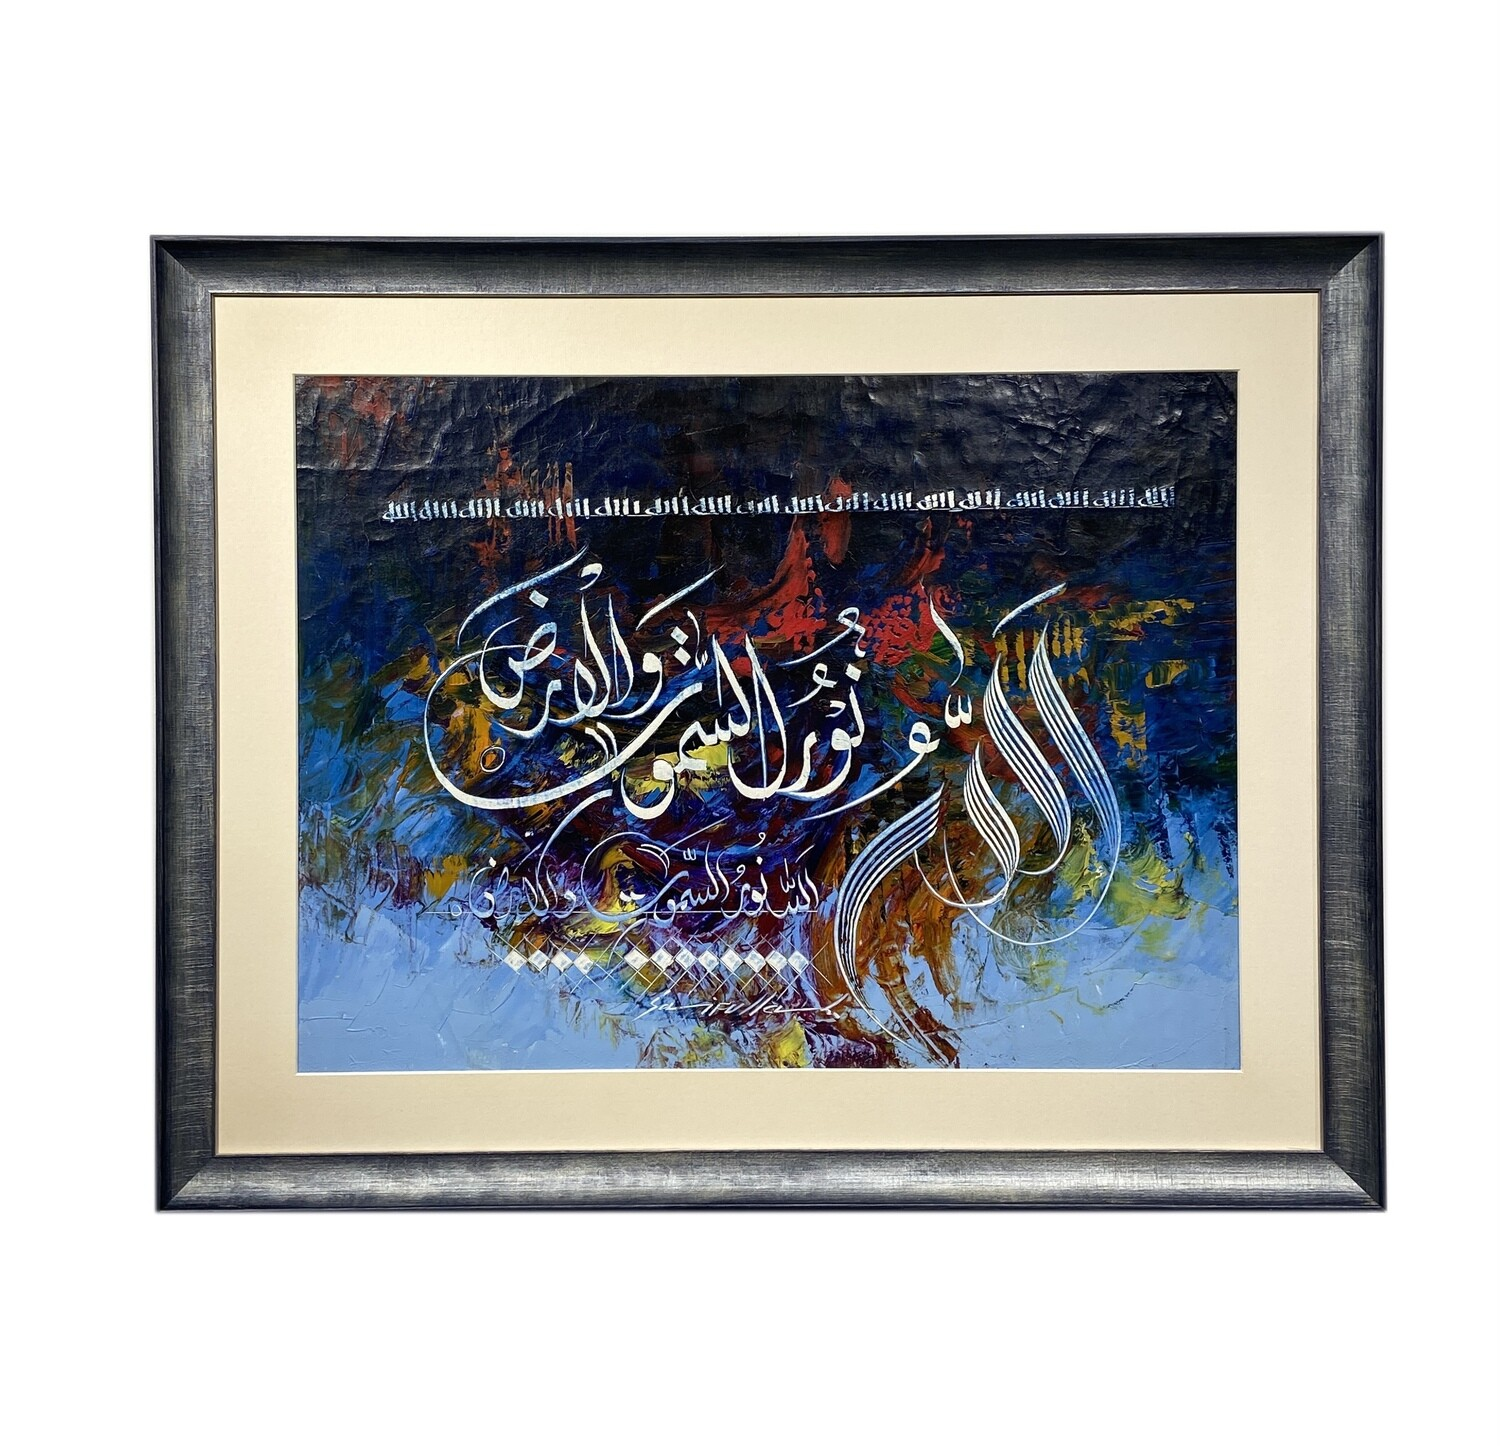 Ayat un Noor - Verse of Light-Original Textured Hand Engraved Vibrant Knife Painted Canvas in a Distressed Blue Silver Frame